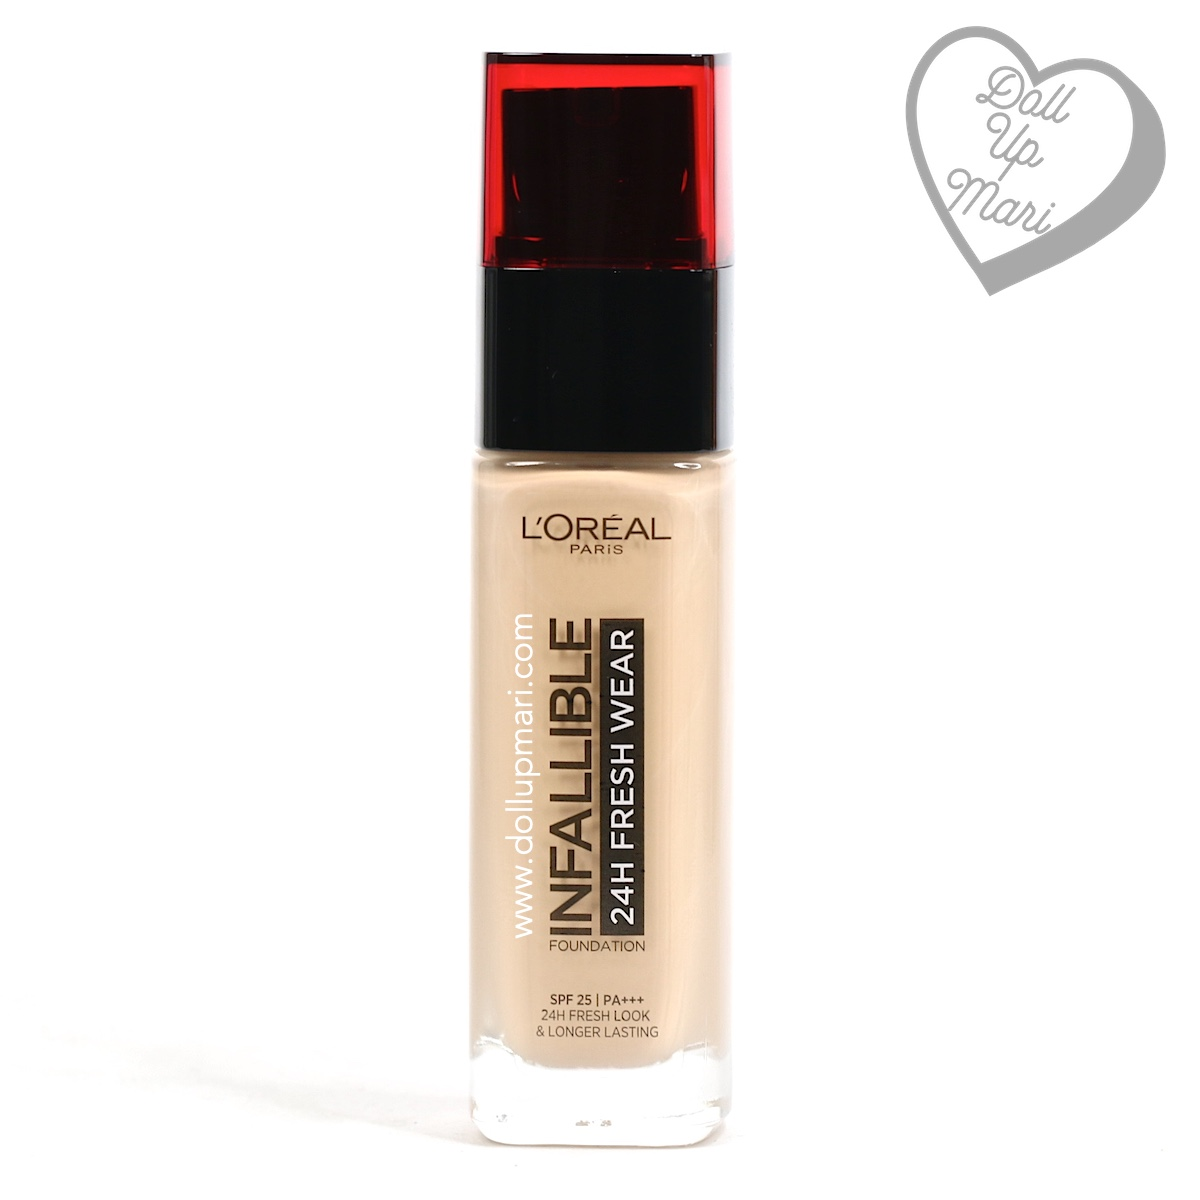 Bottle Front of L'Oréal Paris Infallible 24HR Fresh Wear Liquid Foundation SPF25PA+++ in shade Golden Beige